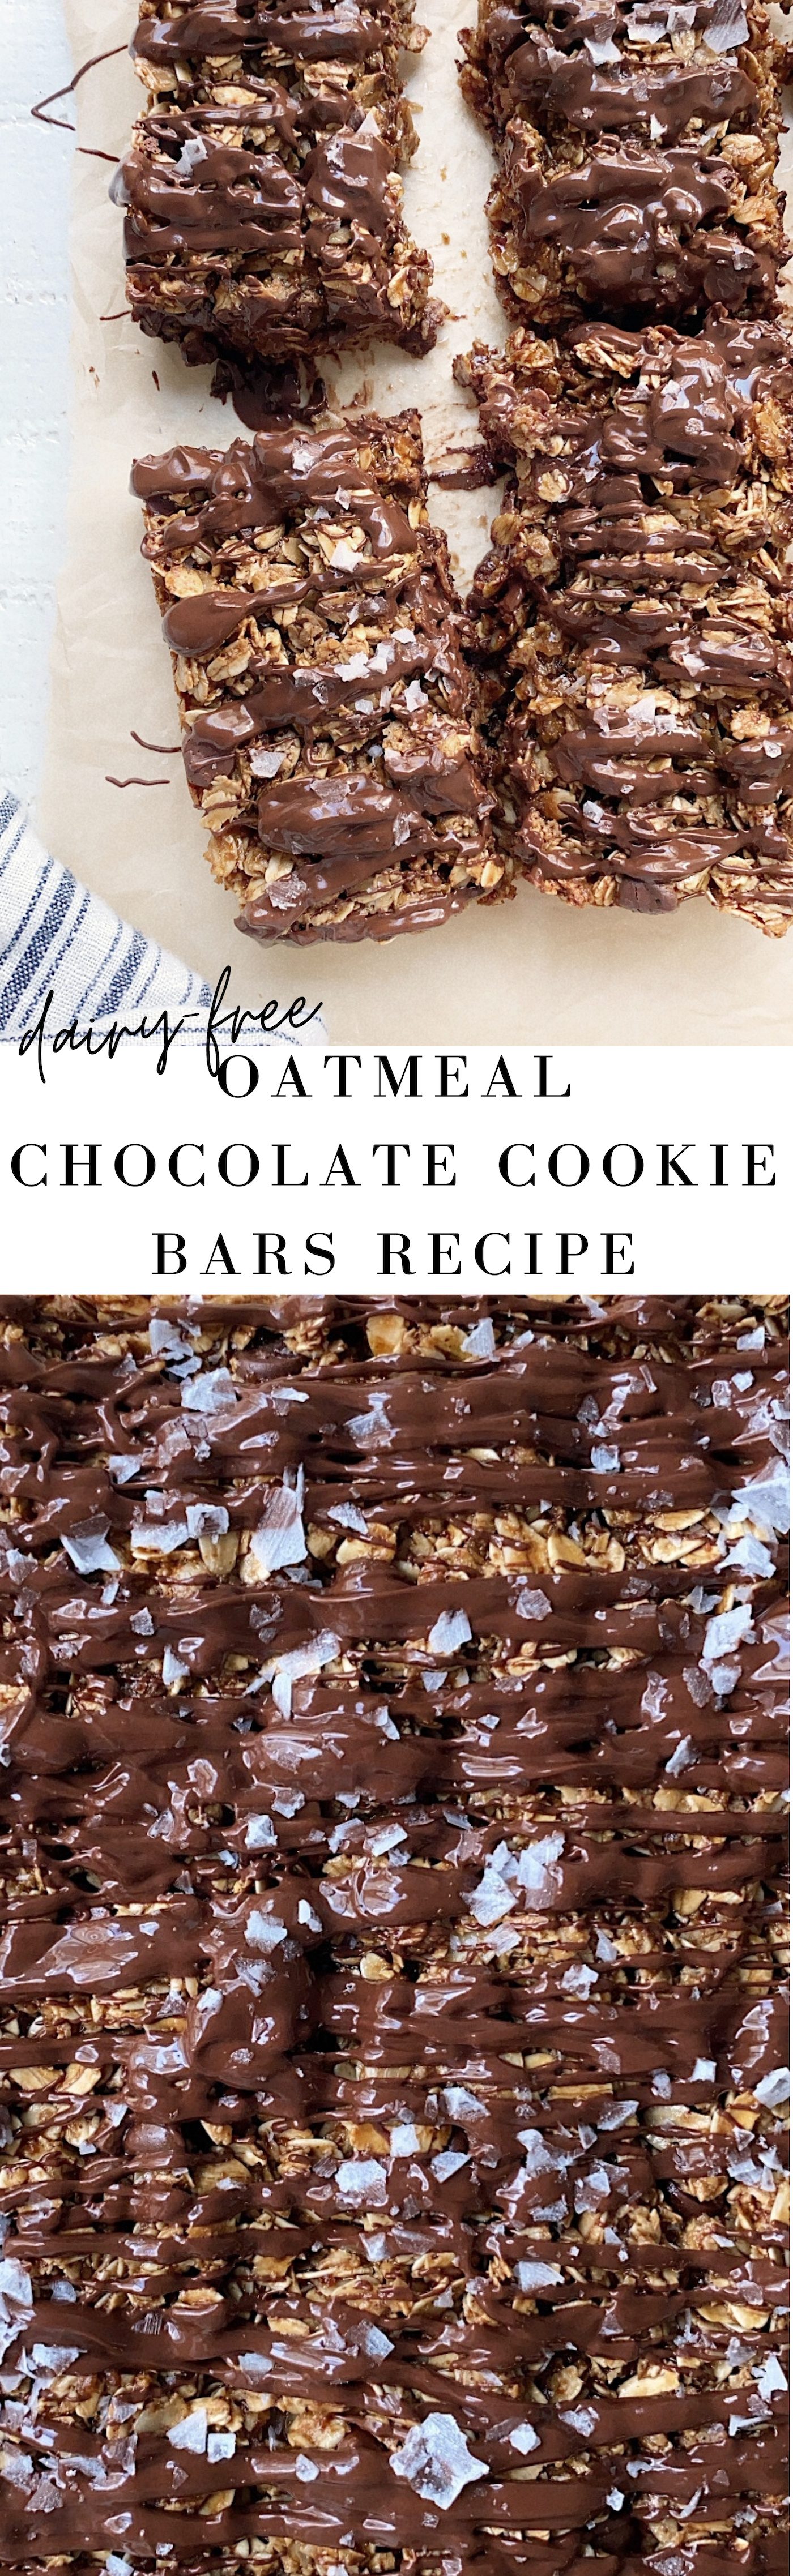 Oatmeal Chocolate Cookie Bars Recipe